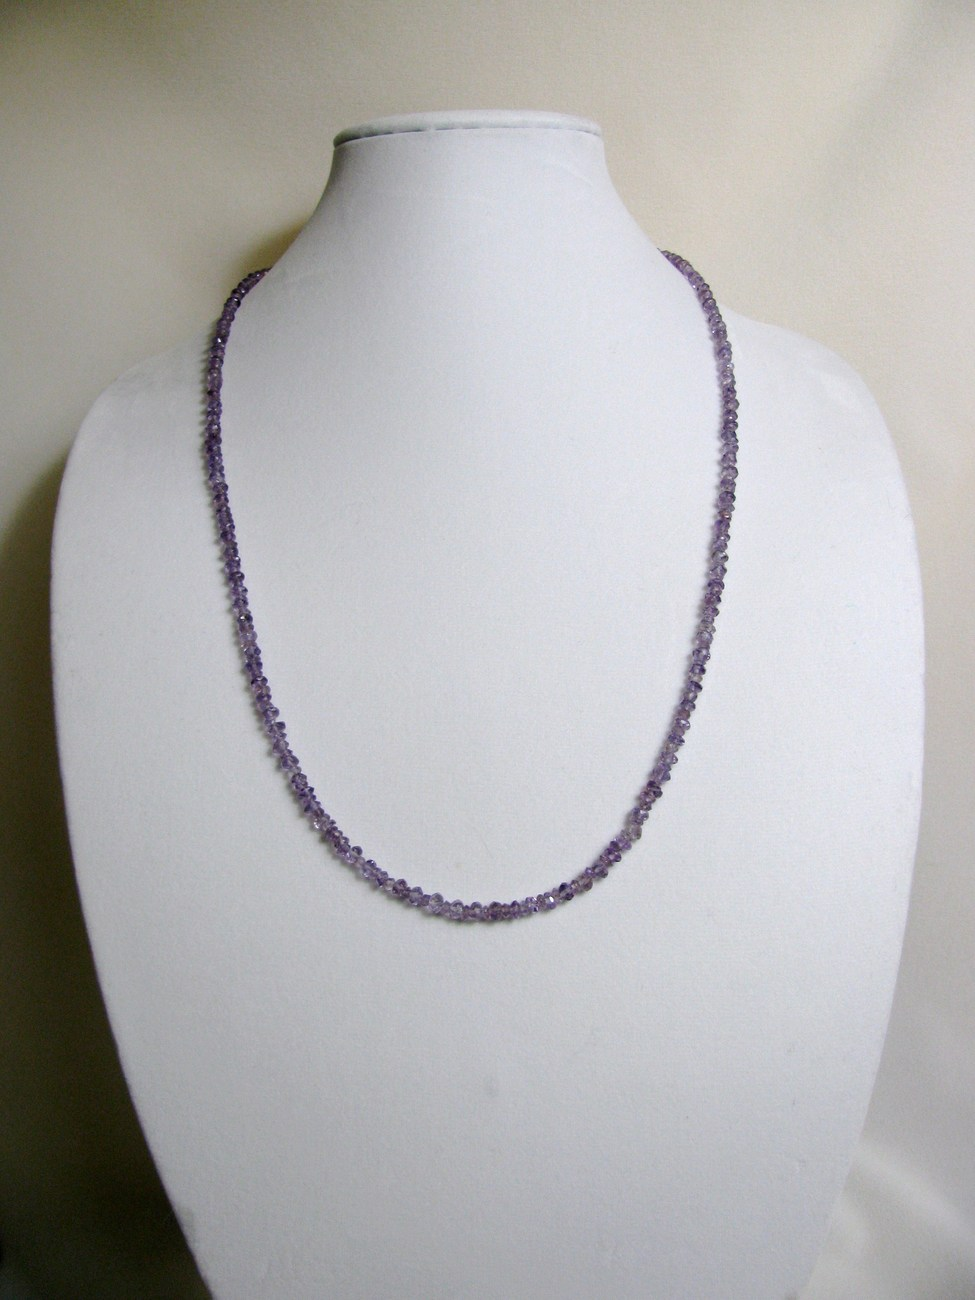 Amethyst Necklace 29 inches Sterling RKS258 RKMixables Silver Collection image 6